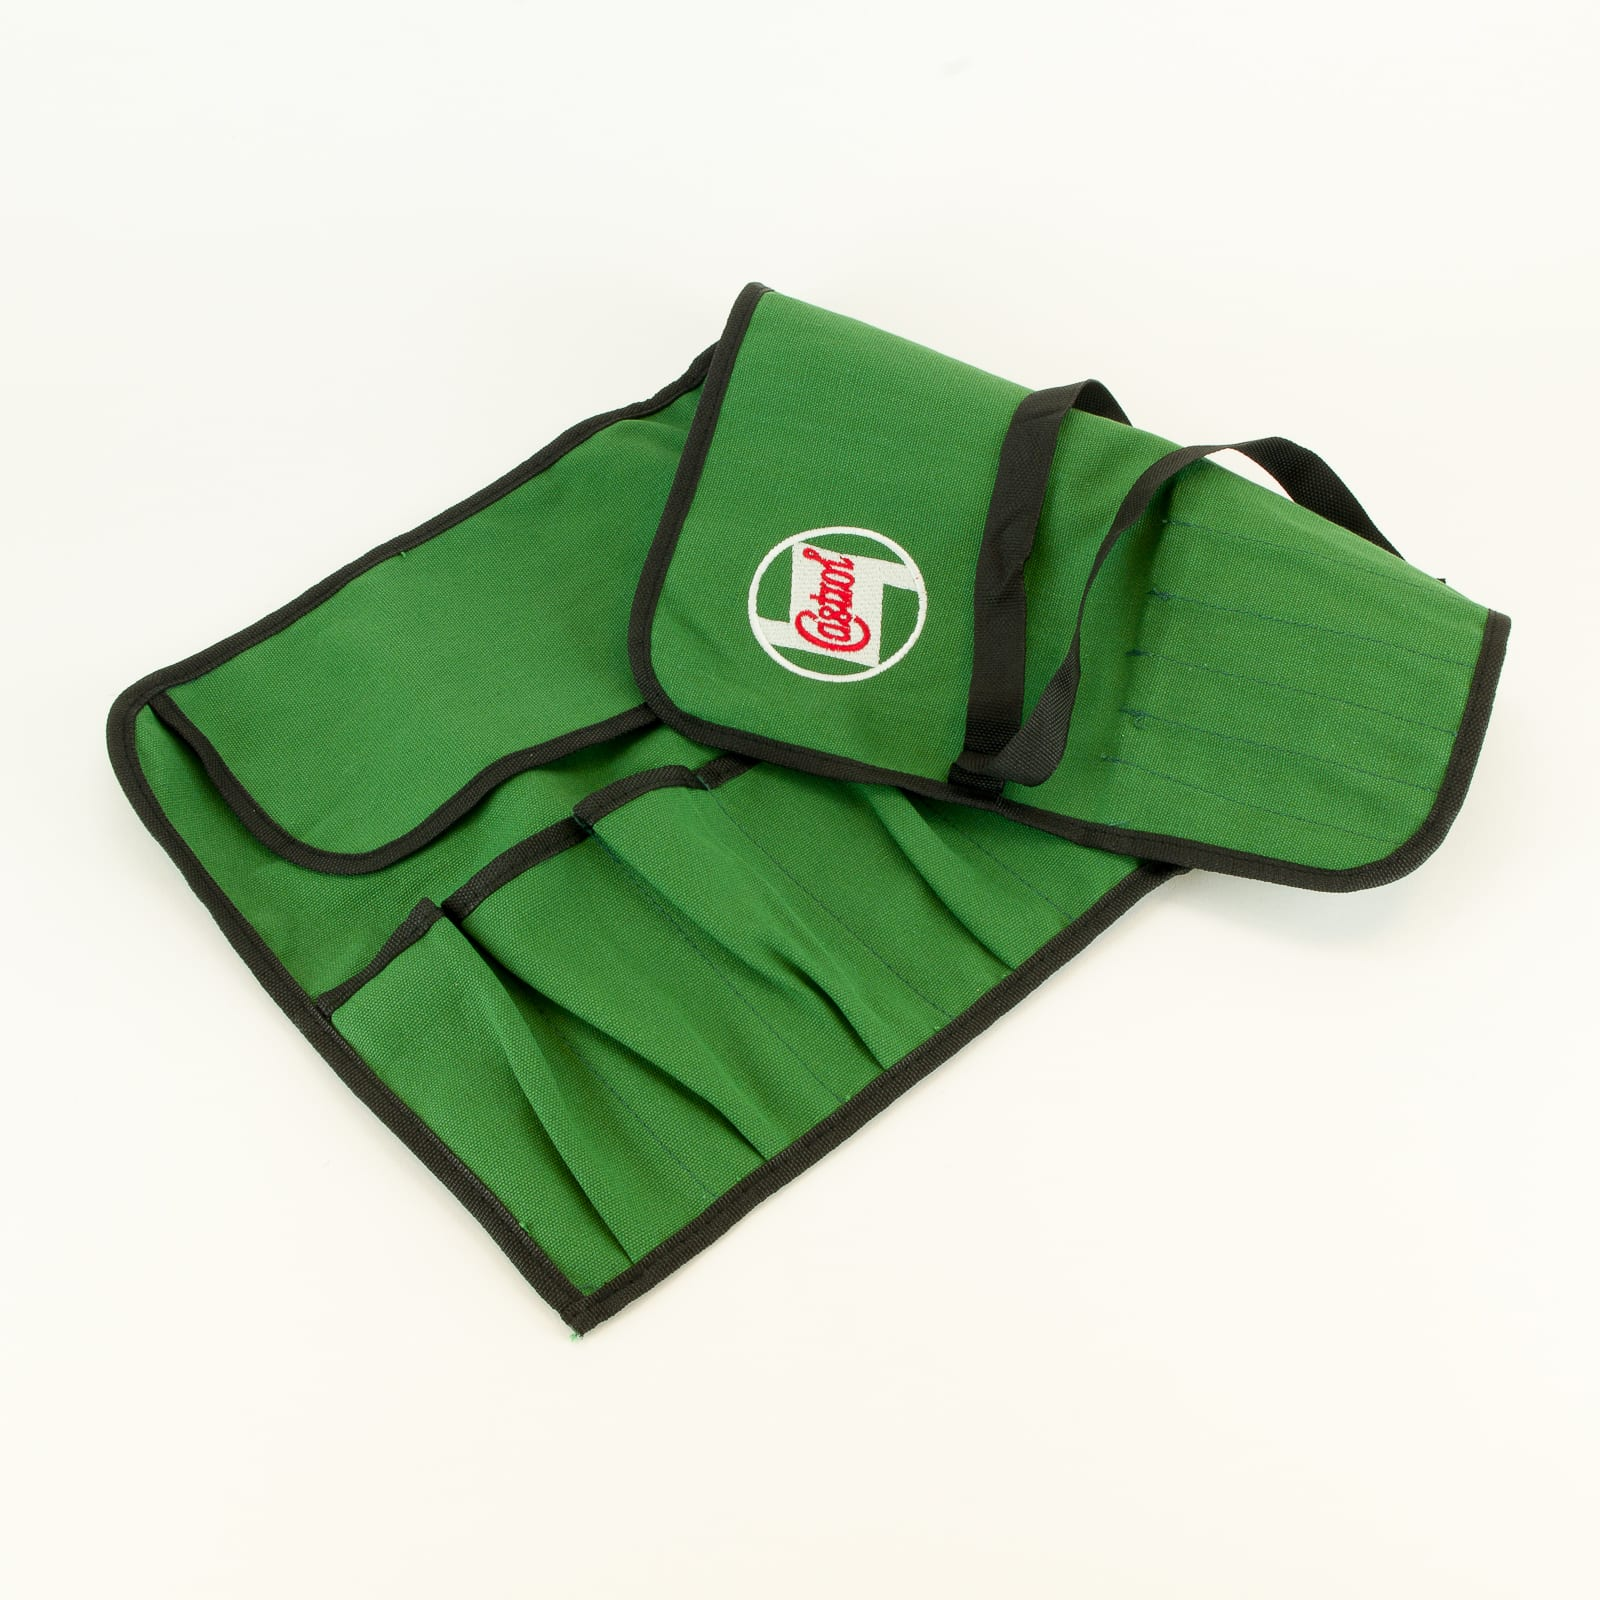 STR589-CASTROL-TOOL-ROLL-3-WEB